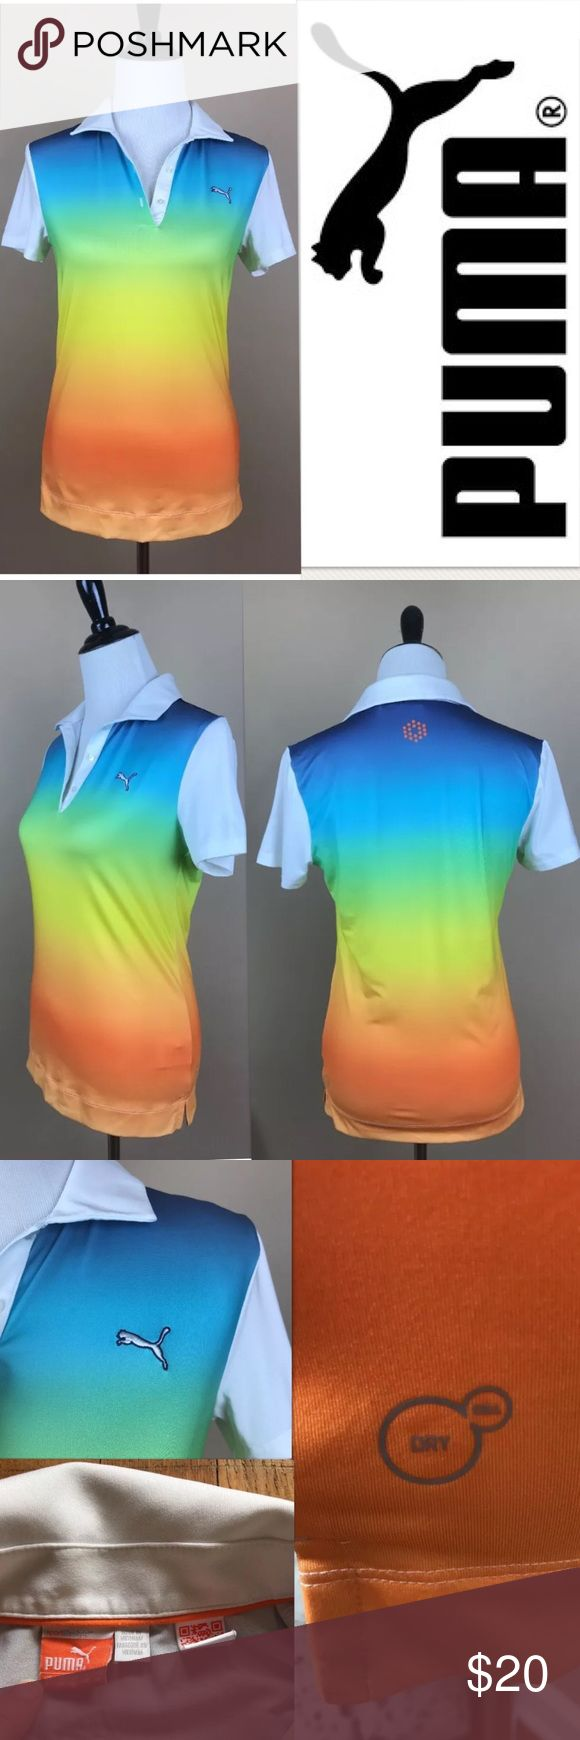 Sz S Puma Sport Lifestyle Polo Rainbow top shirt Brand: Puma   Size: small ( S )   Measurements: see photos (fabric has stretch)   Colors: gradient rainbow, blue, orange, yellow   Condition: no flaws noted    -----   I do have a dog that sheds. I lint roll prior to shipping, but it is good to be aware.   I live in a smoke free home Puma Tops